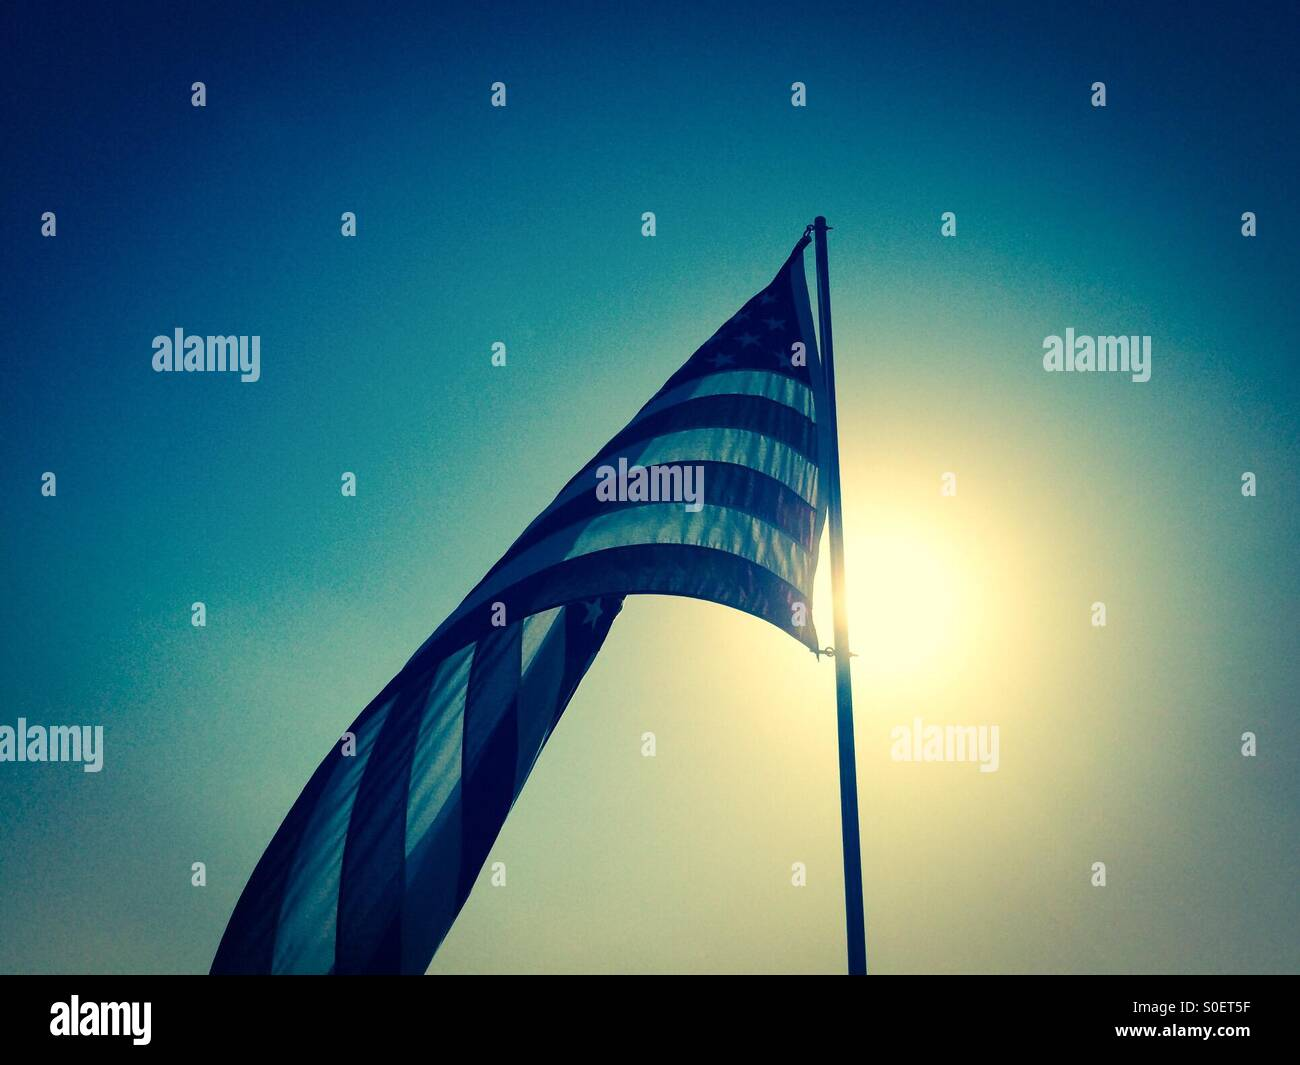 American flag outside on a flagpole with the morning sun behind it - Stock Image